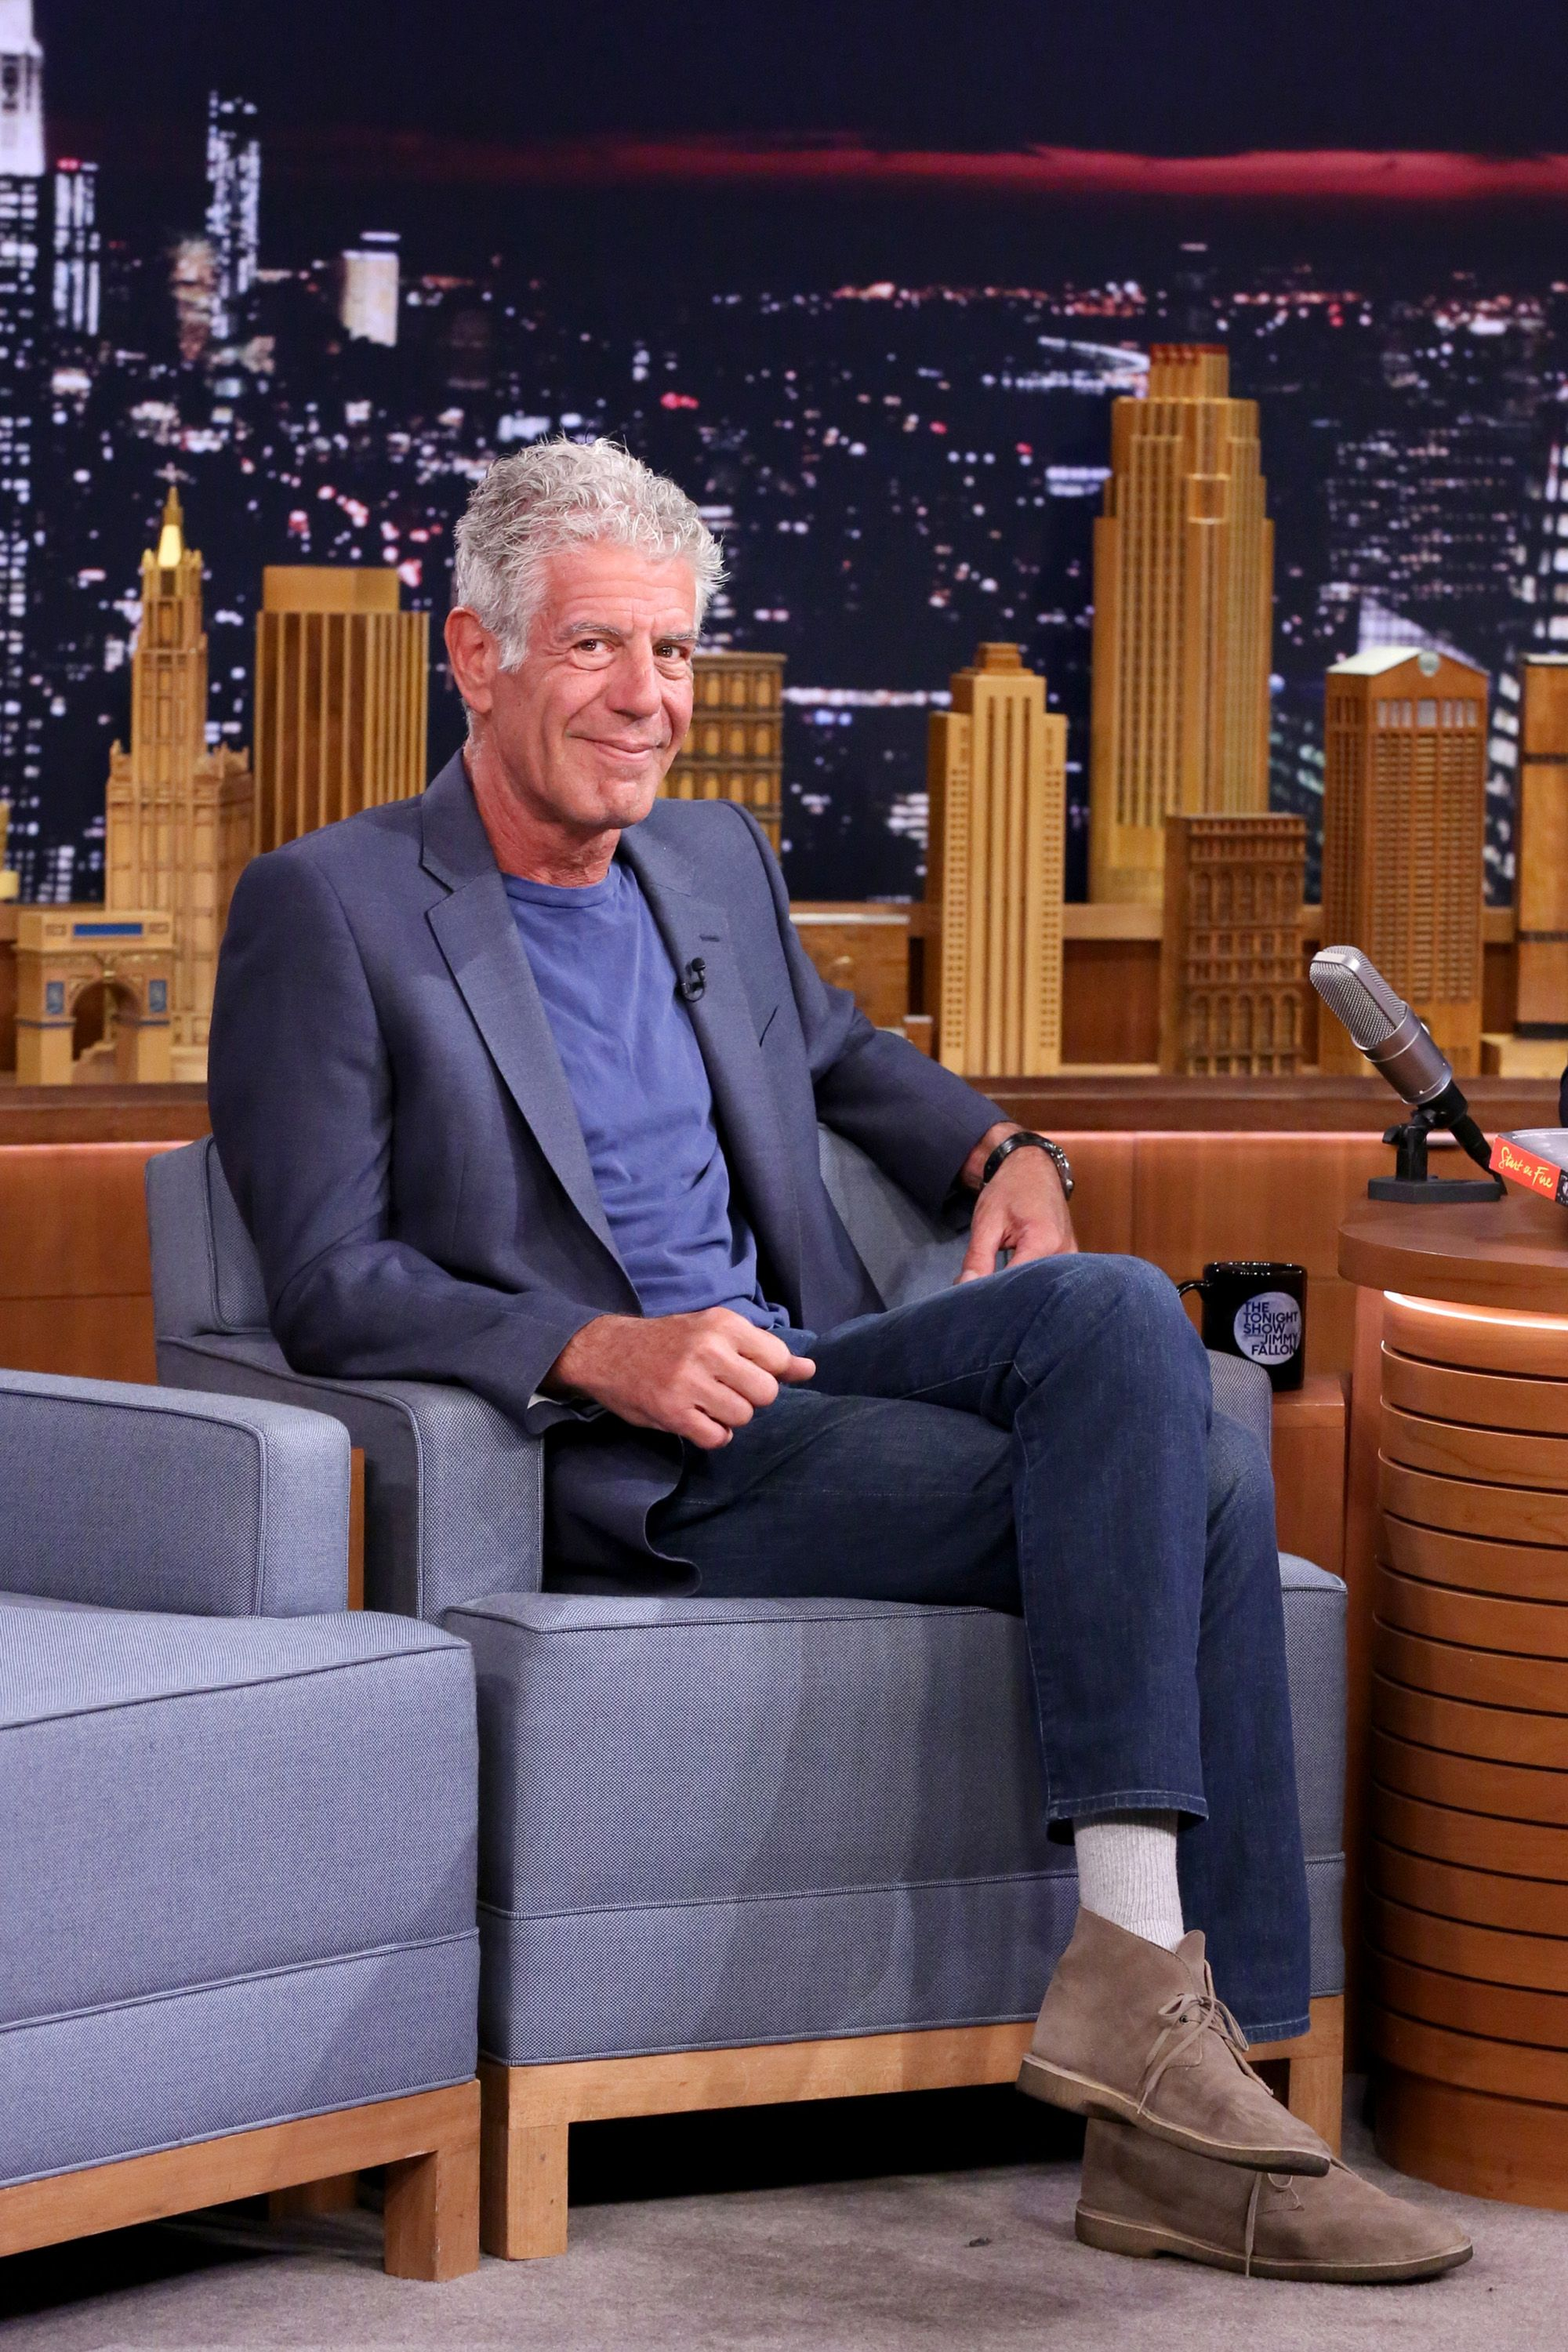 The Timeless, Stylish Boots Anthony Bourdain Wore Everywhere